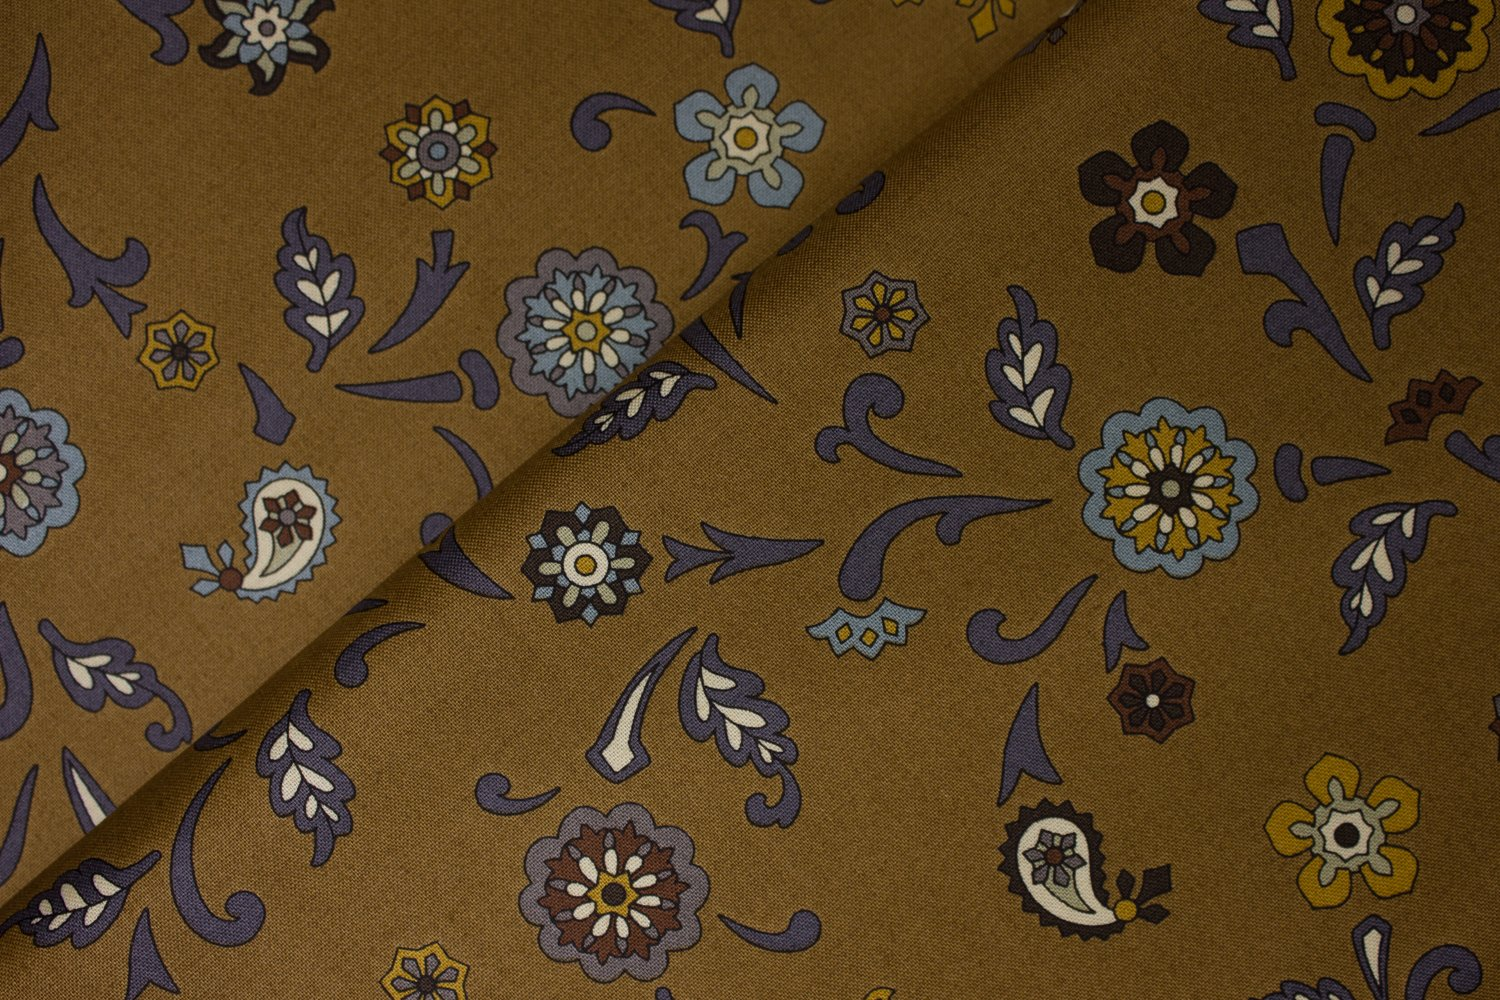 Floral Medallions on Brown by Suite 1500 for Andover Fabrics